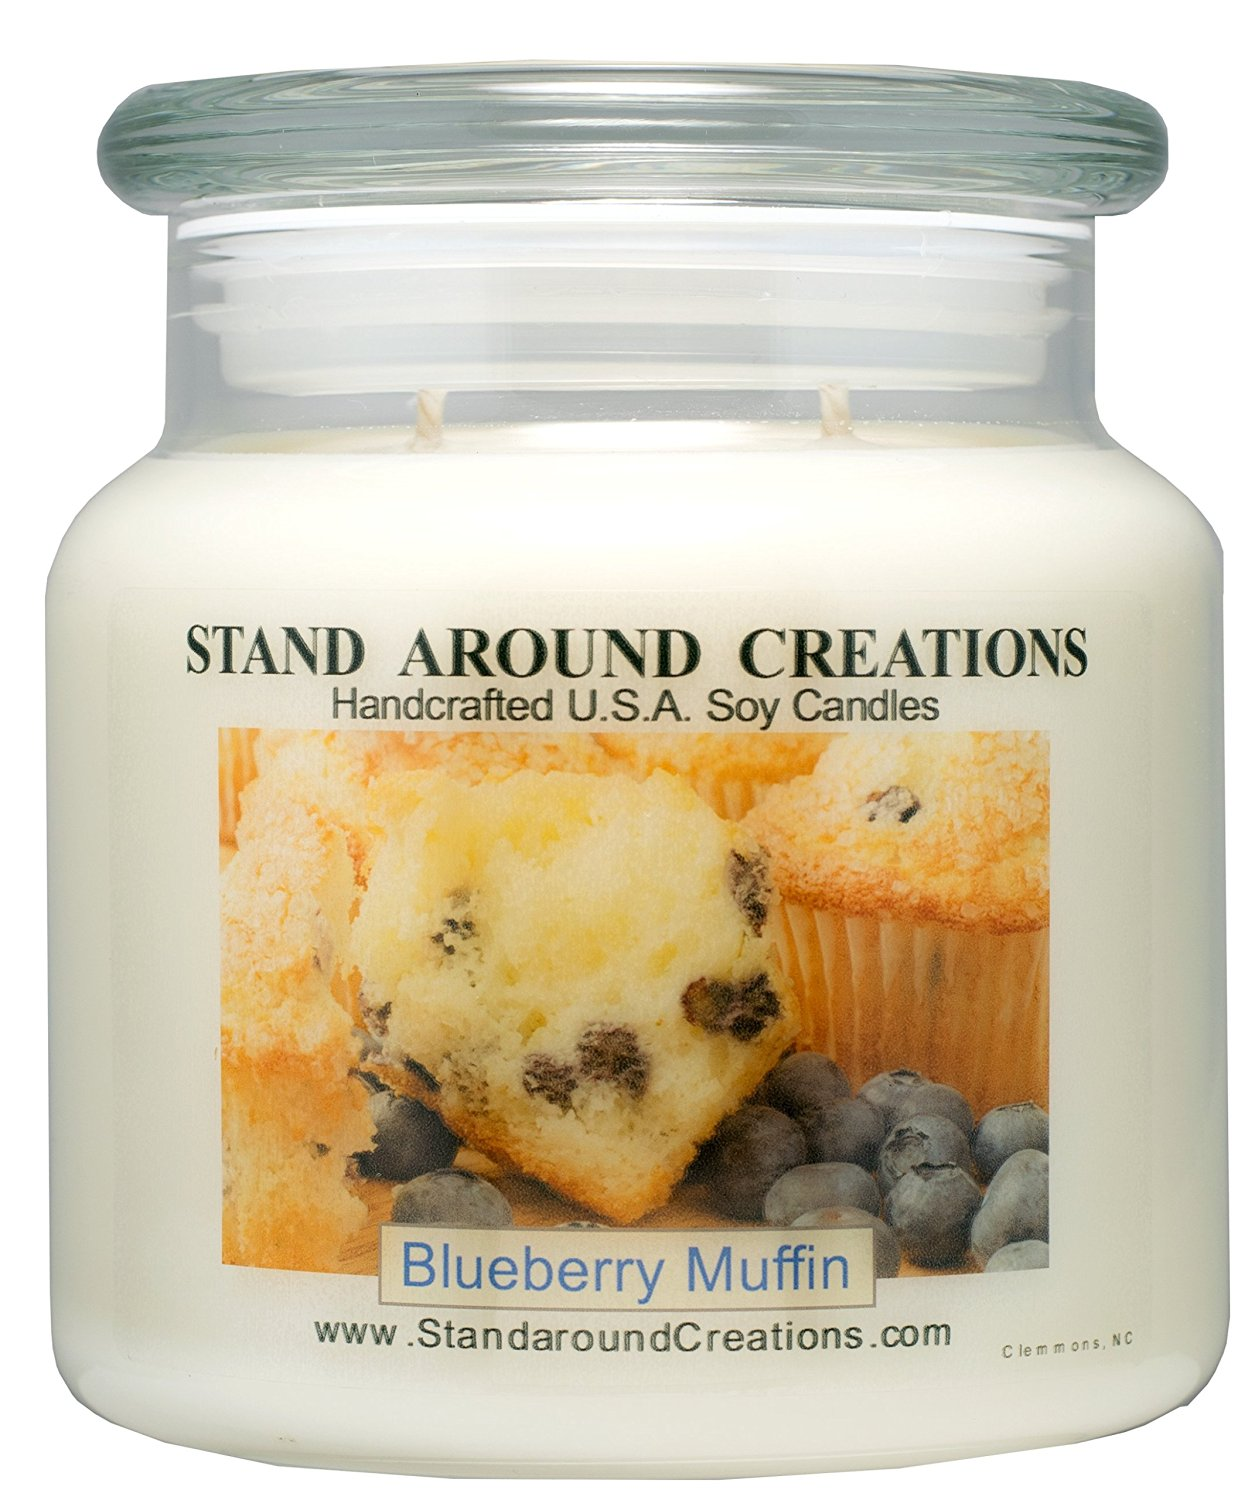 Stand Around Creations Premium 100% Soy Apothecary Candle - 16oz - Blueberry Muffins: The aroma of freshly baked blueberry muffins.